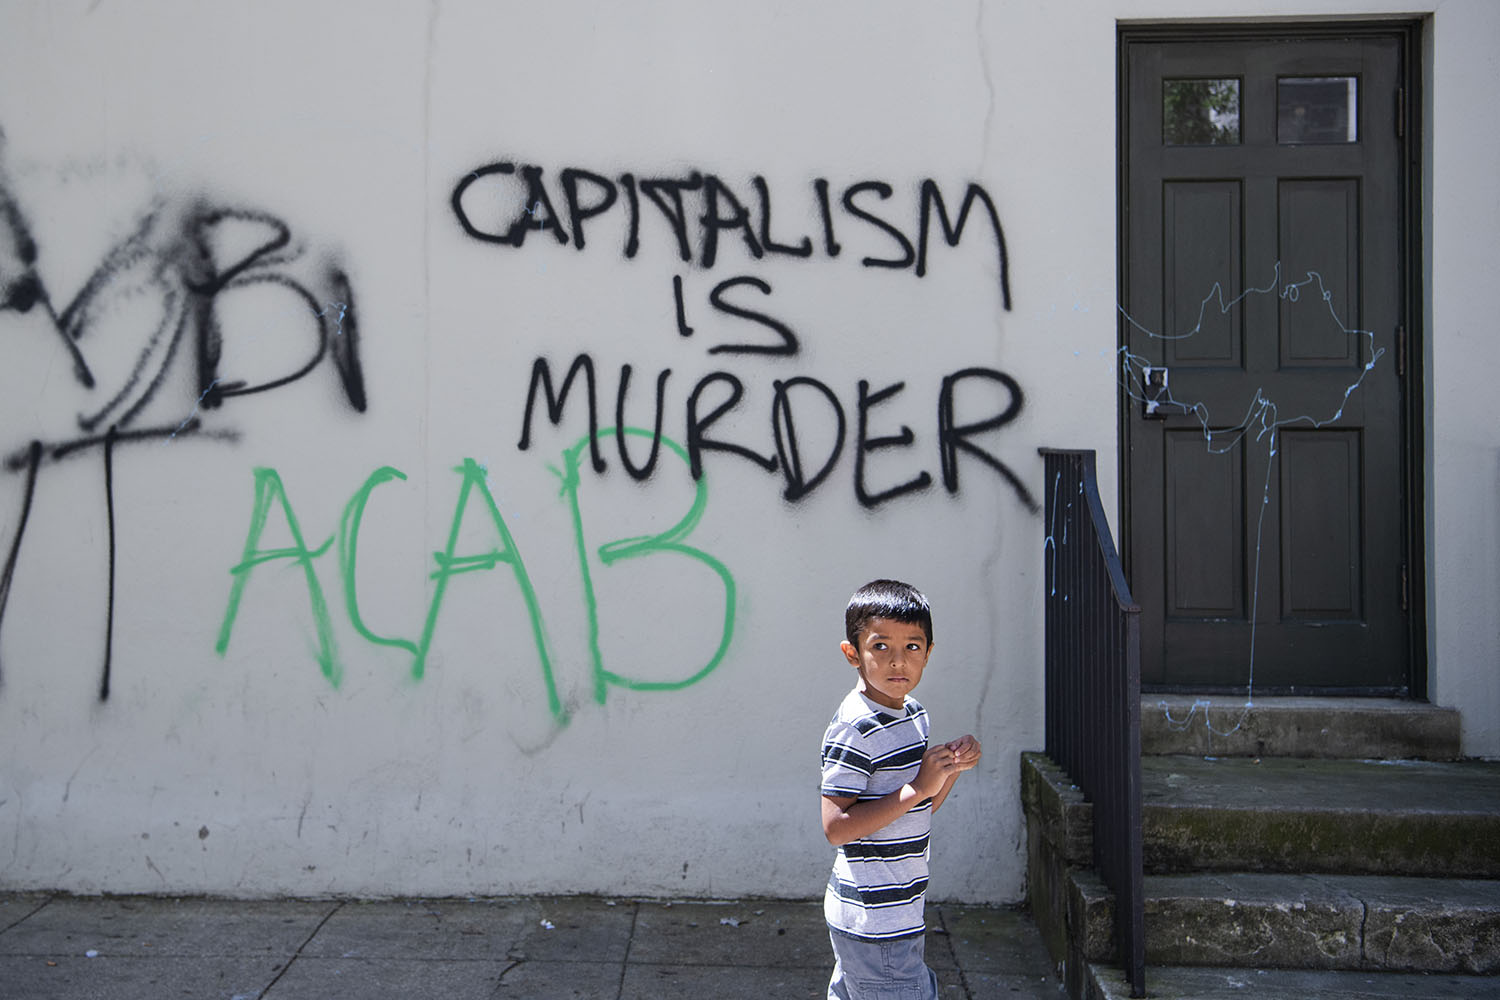 A child walks by graffiti on H St. NW near the White House in Washington on June 1, after protests sparked by the killing of George Floyd.